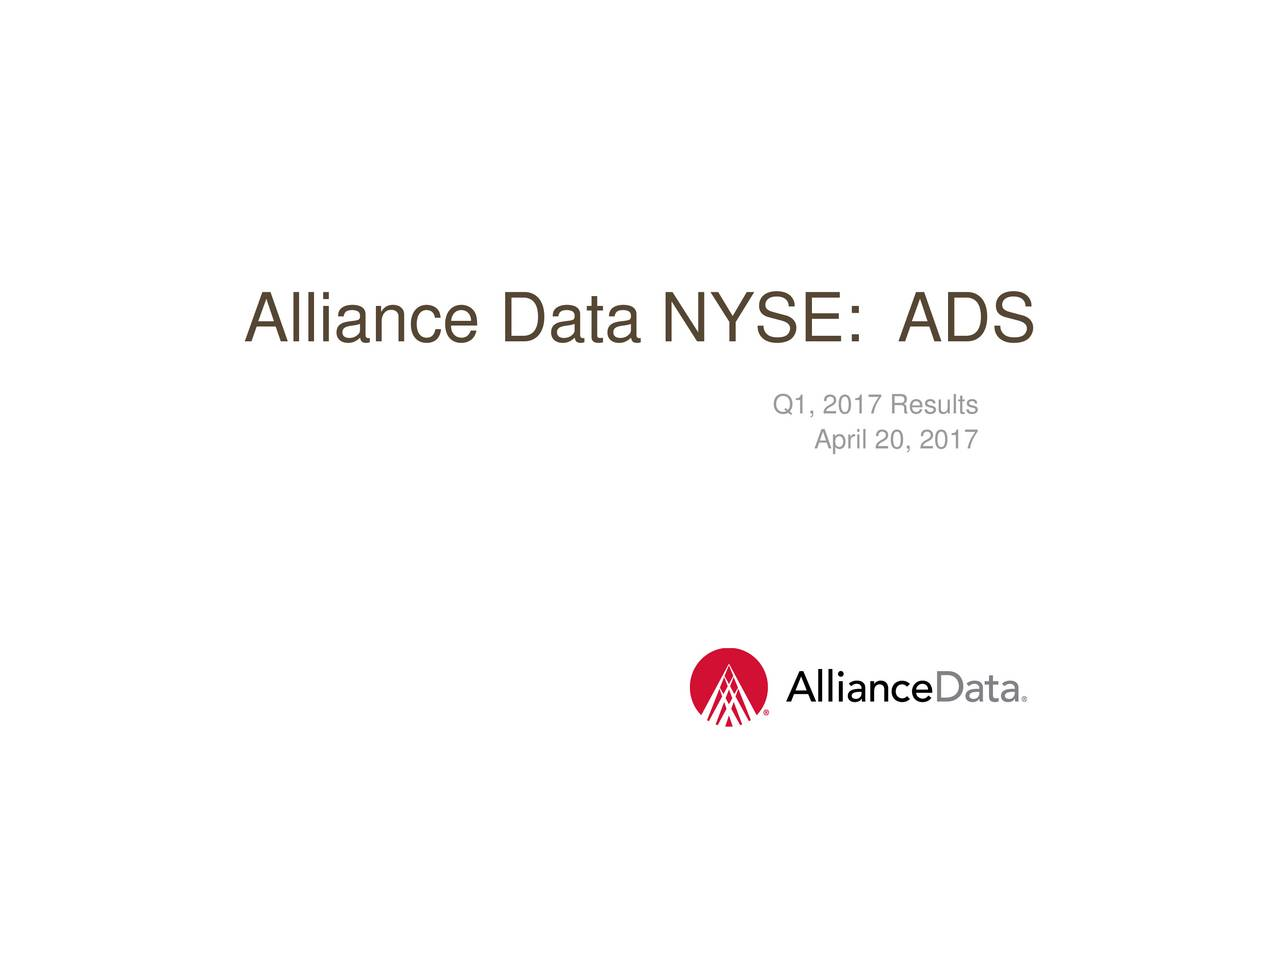 Q1, 2017 Results April 20, 2017 2017 ADS Alliance Data Systems, Inc. Confidential and Proprietary